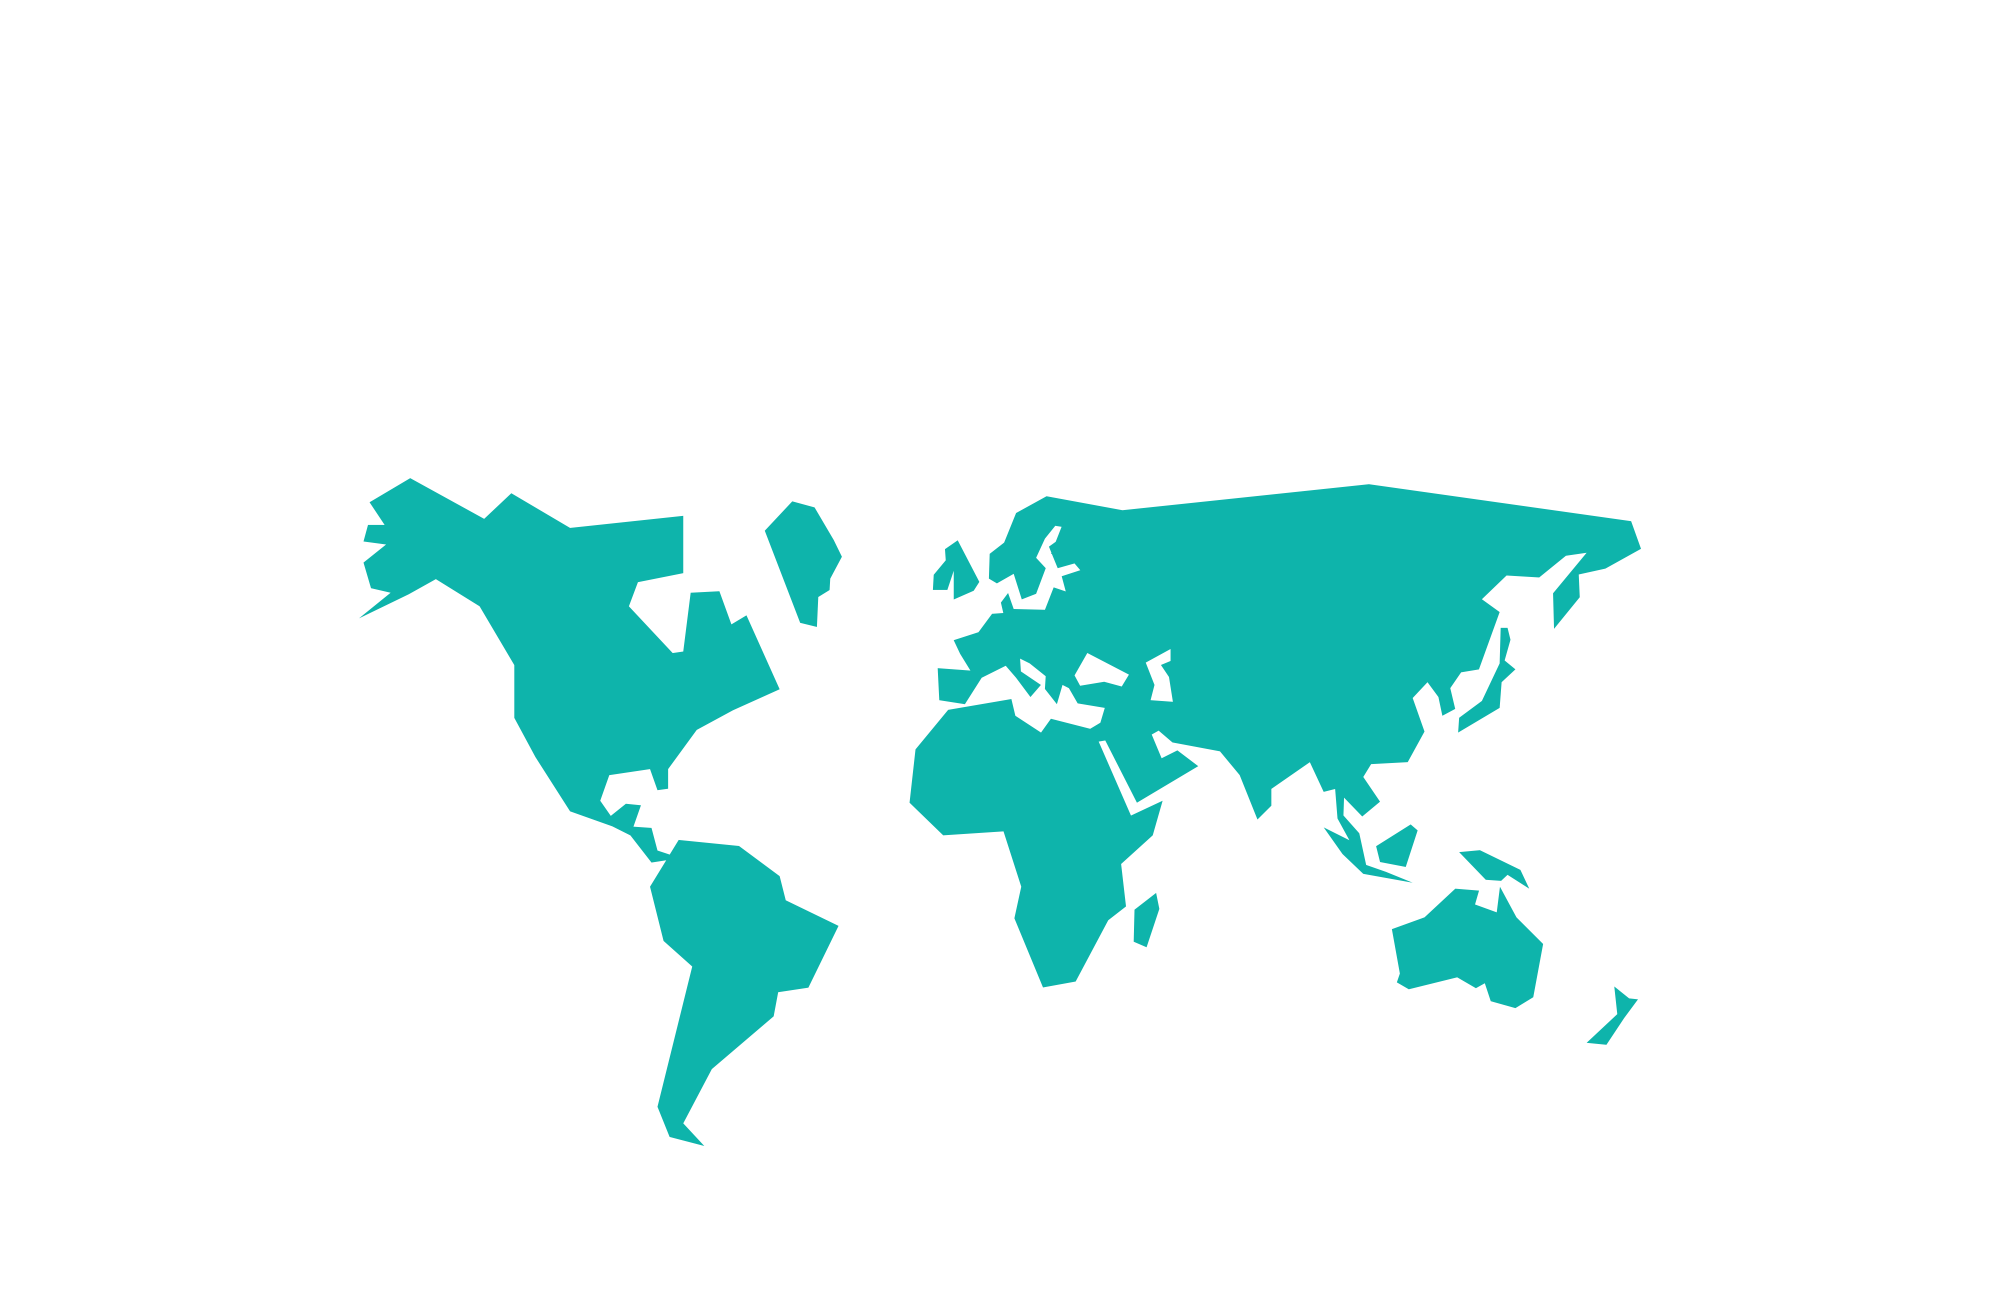 The Expedition Expedition - Map of united states for powerpoint presentation